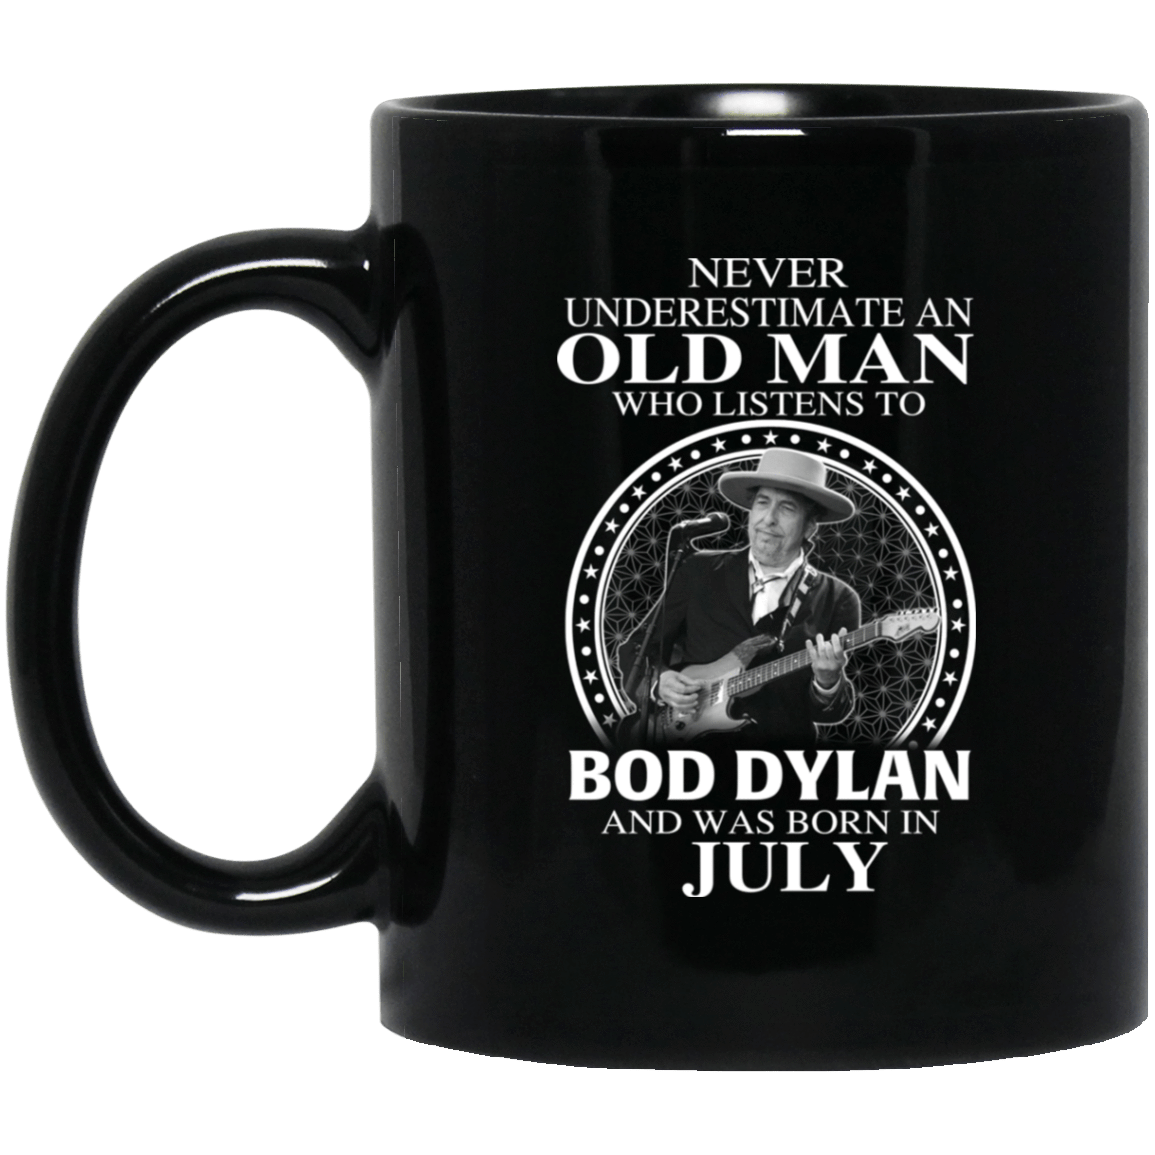 An Old Man Who Listens To Bob Dylan And Was Born In July Mug 1065-10181-76154383-49307 - Tee Ript